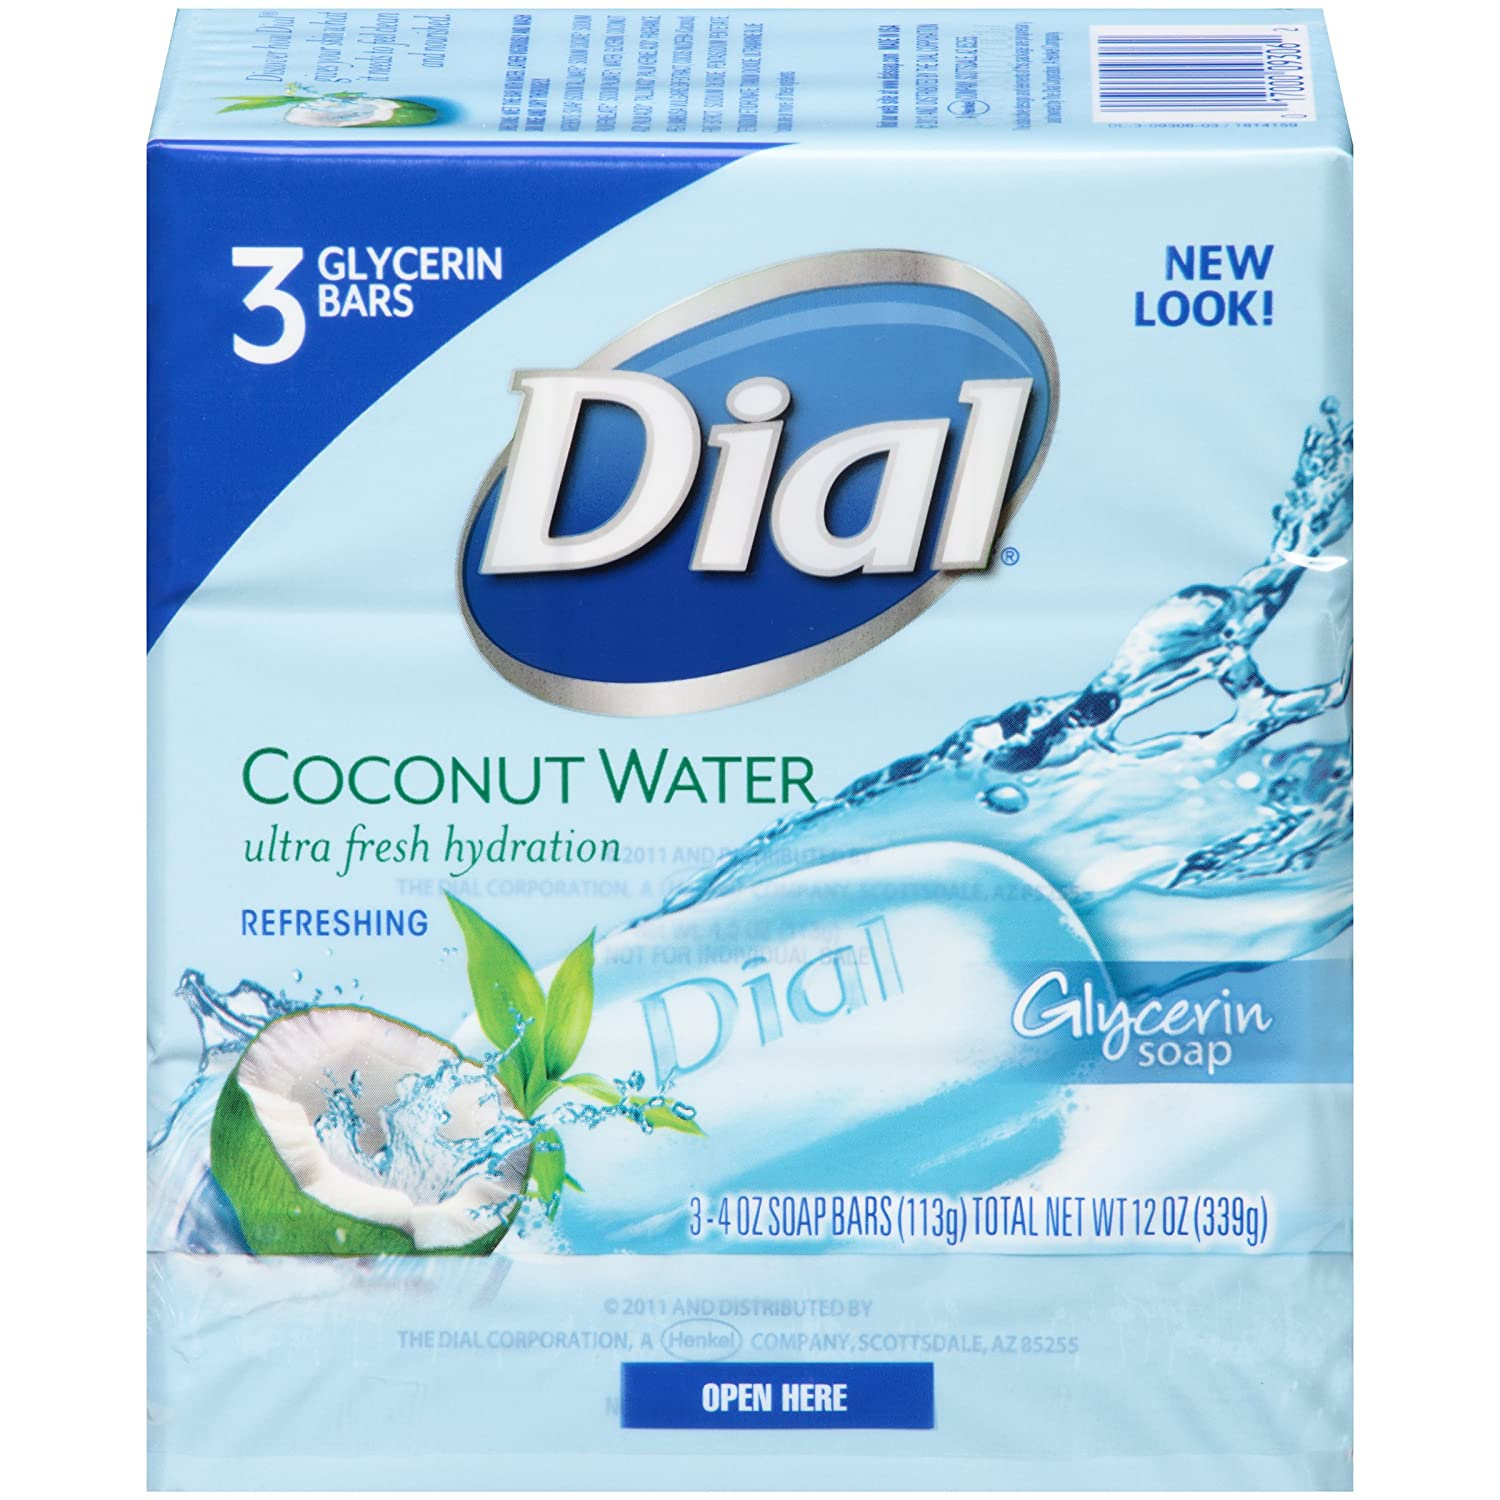 Dial Soap, Glycerin Bars, Coconut Water & Bamboo Leaf Extract 3 - 4 oz (113 g) bars [12 oz (340 g)] by Dial Henkel Company Di741